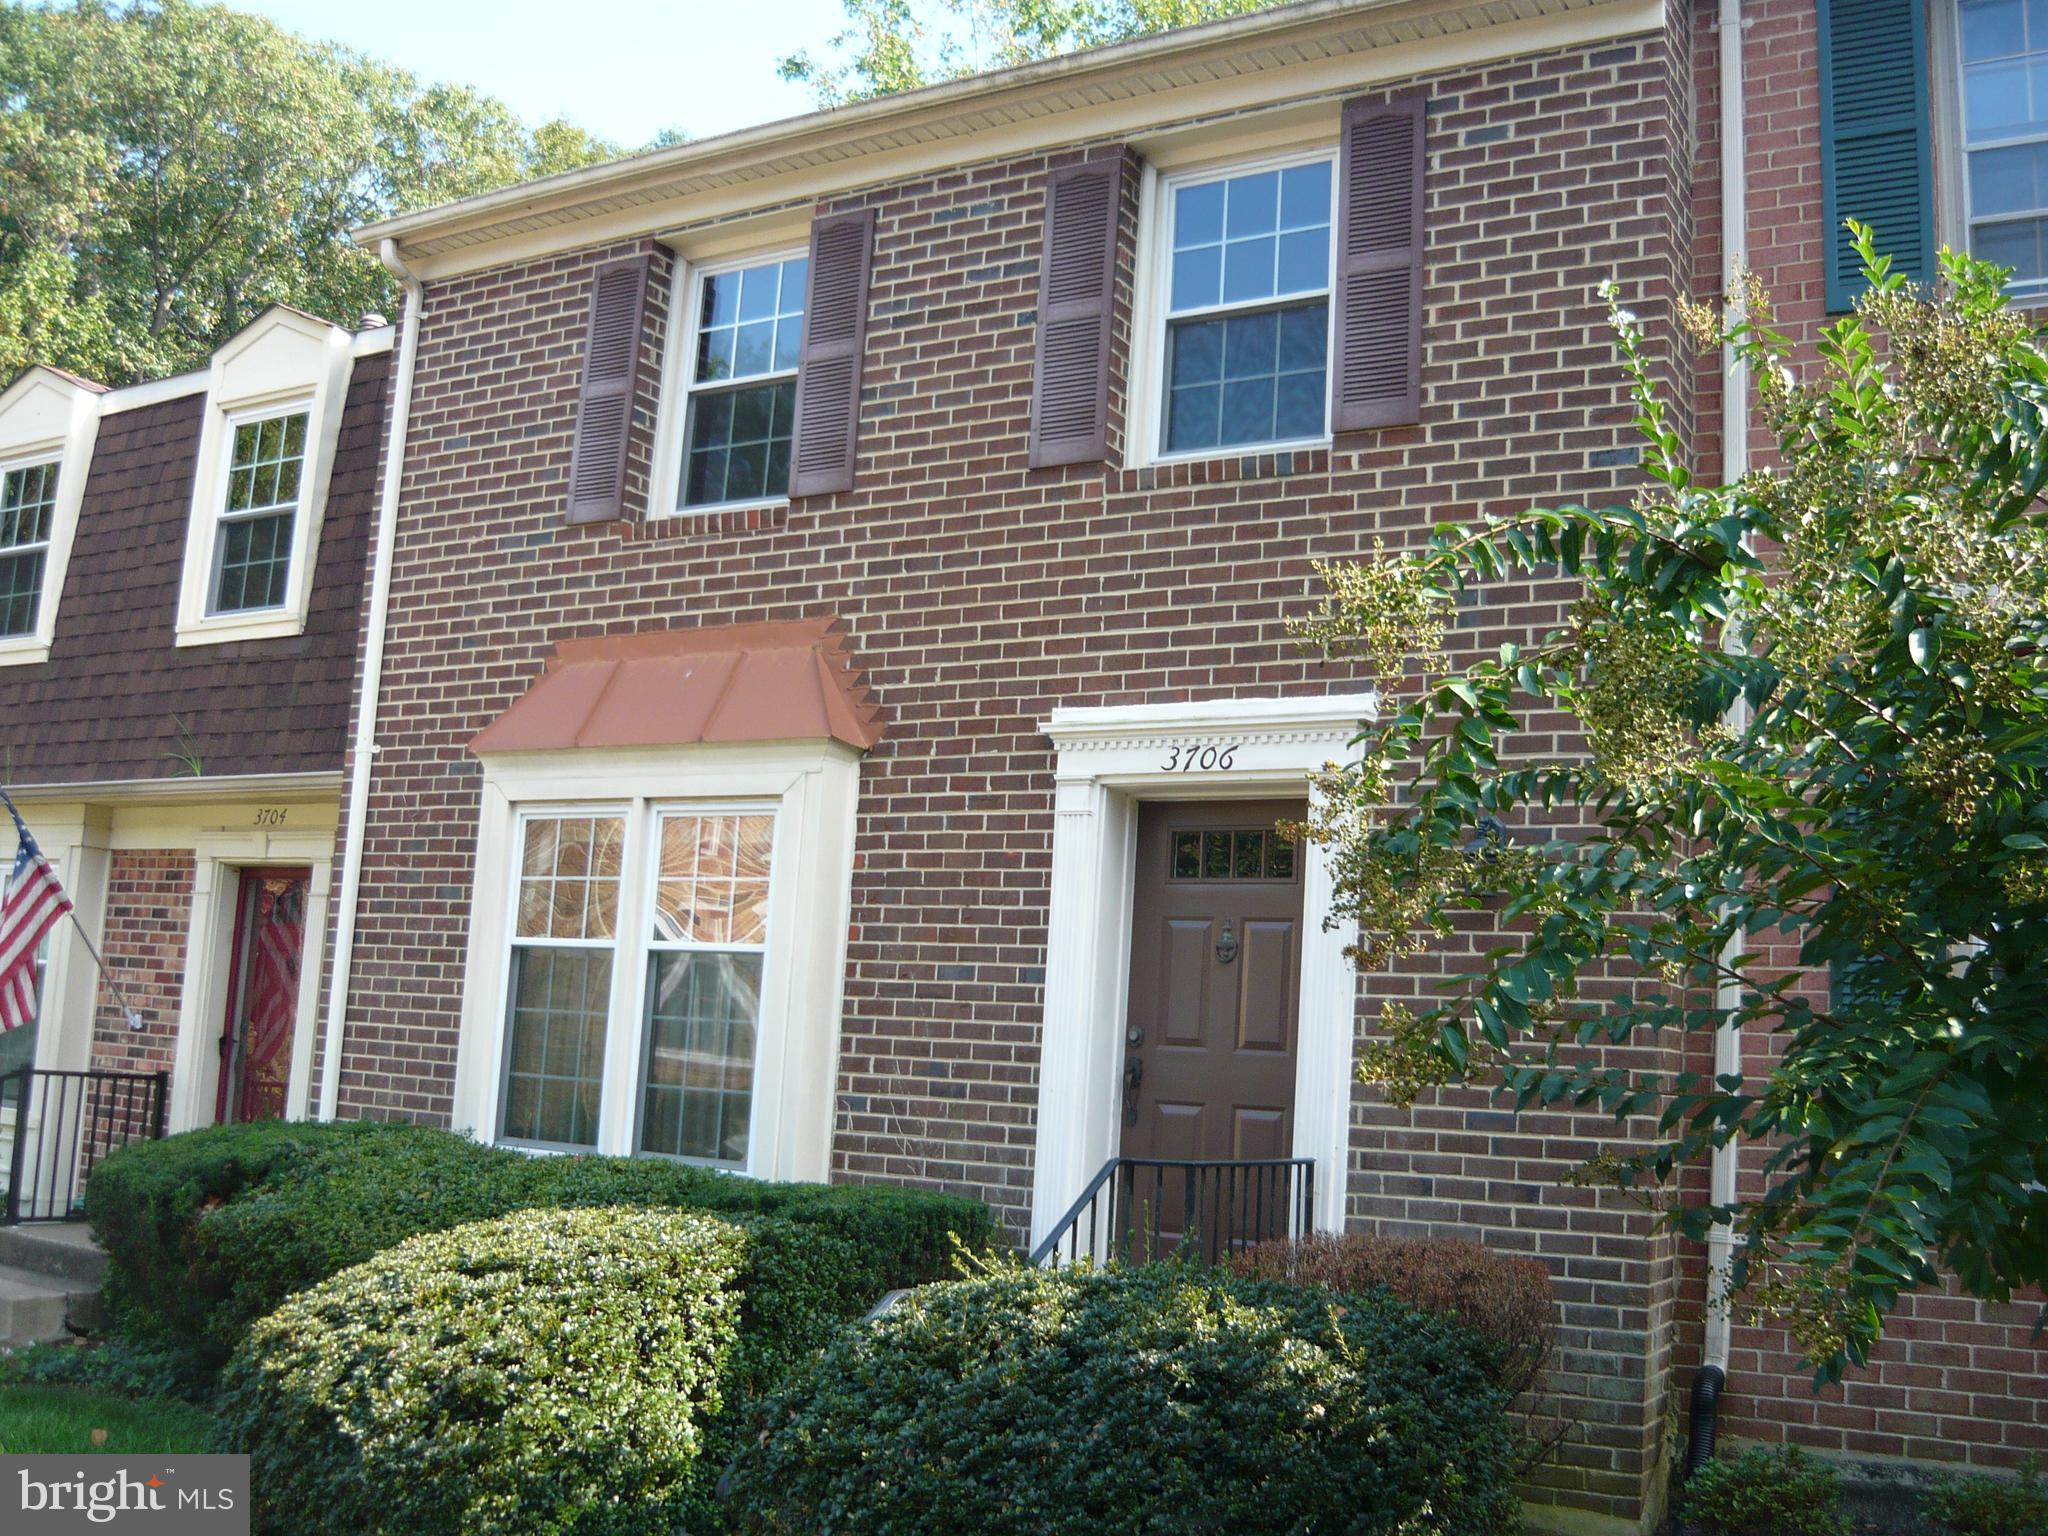 3 LEVEL, 4 BEDROOM, 3 FULL BATHS AND 1 1/2 BATH BRICK TOWNHOUSE IN SOUGHT AFTER                  LAF